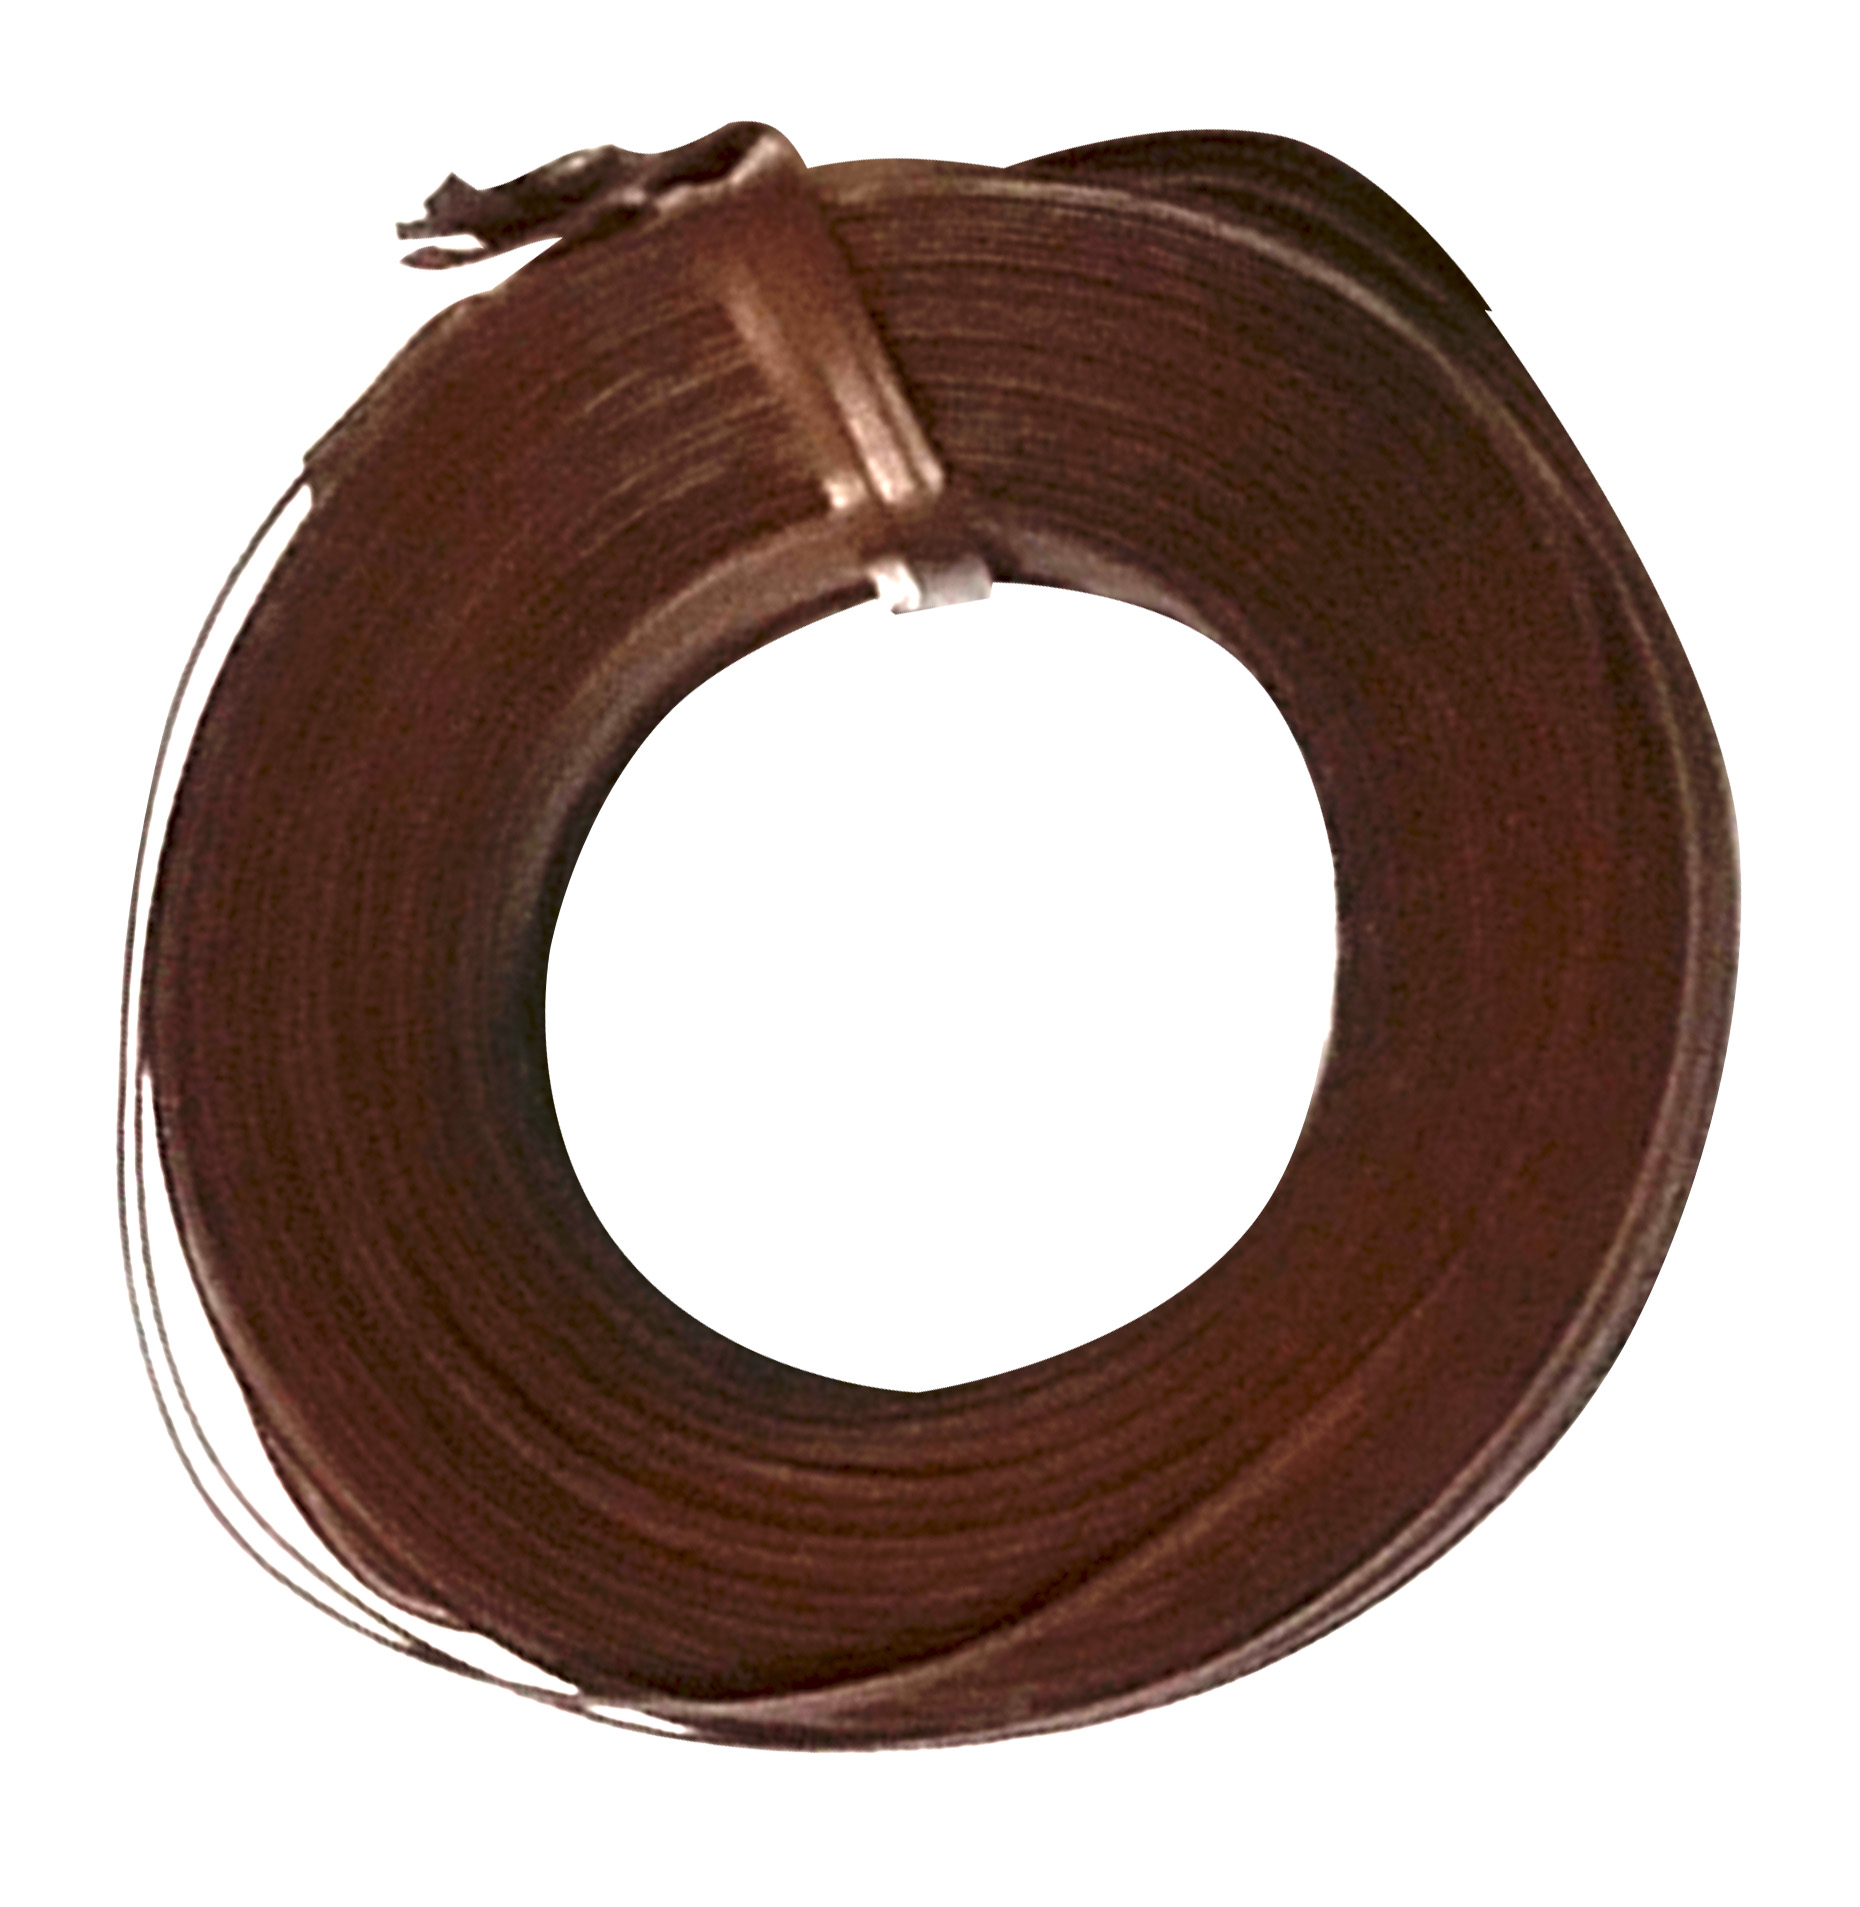 Zenport Electric Tying Tool Tie Wire ET1-WIRE1 295-Feet Brown PVC Covered Twist Tie Wire